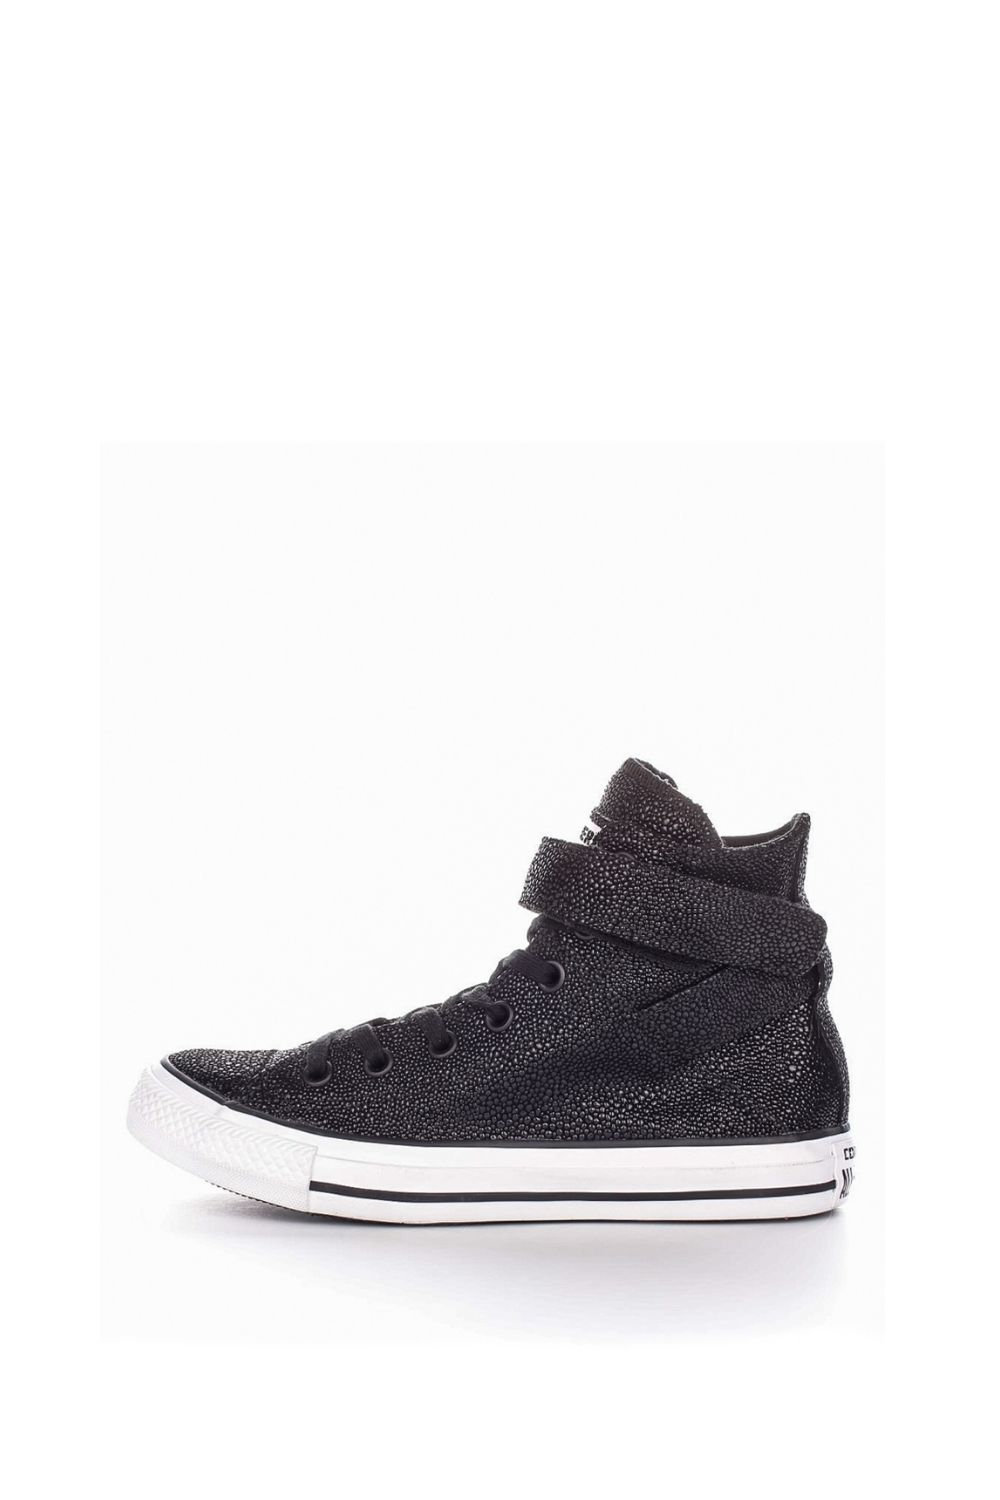 CONVERSE - Sneakers Chuck Taylor All Star Brea Μαύρα